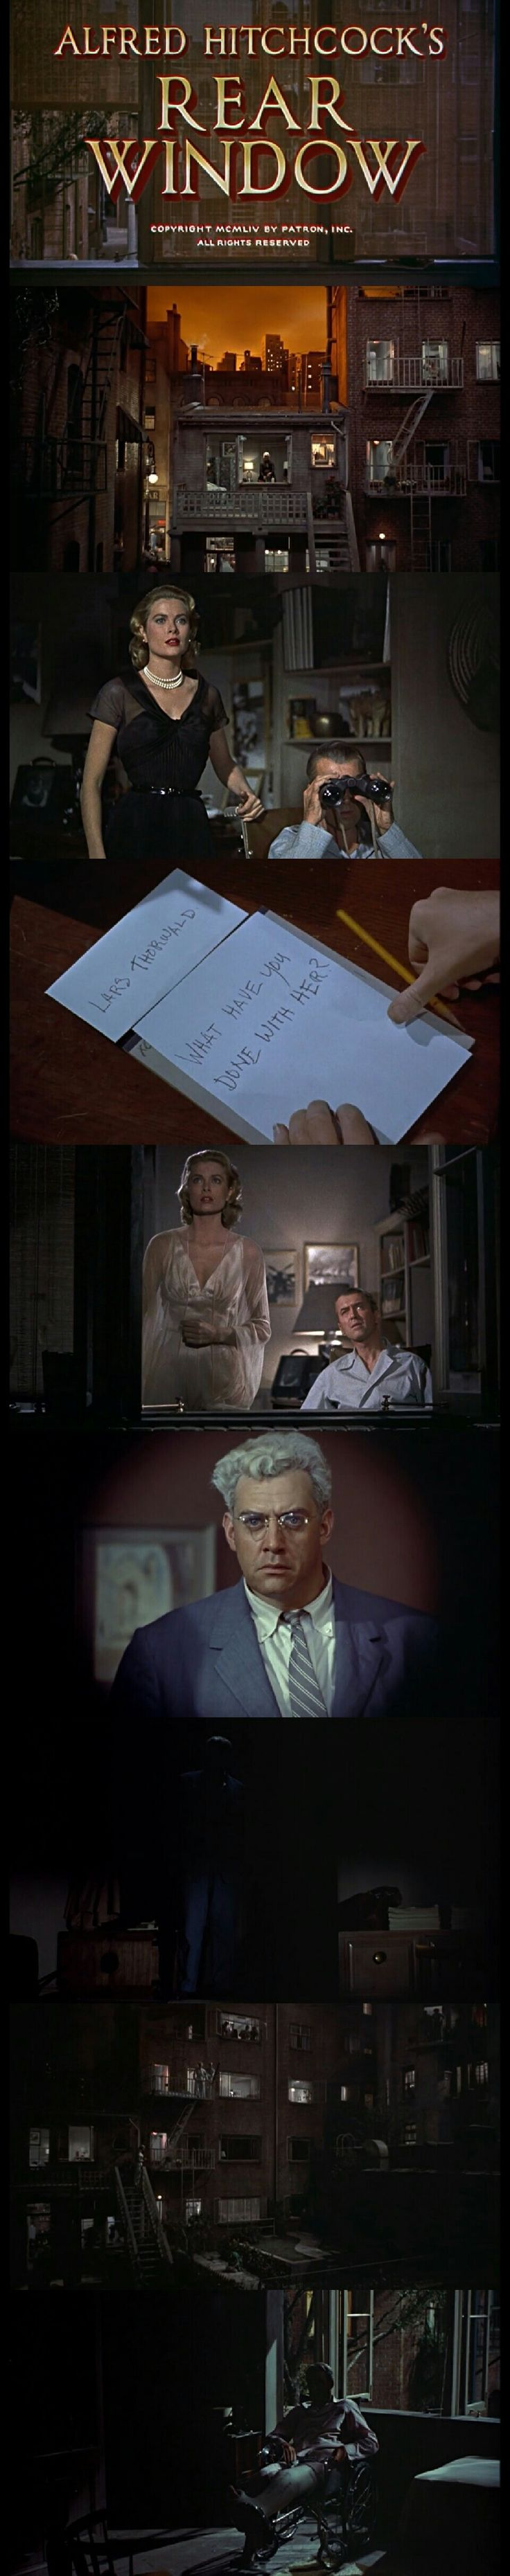 "alfred hitchcocks rear window analysis Rear window is a 1954 suspense thriller directed by alfred hitchcock, written by john michael hayes and based on the 1942 short story ""it had to."